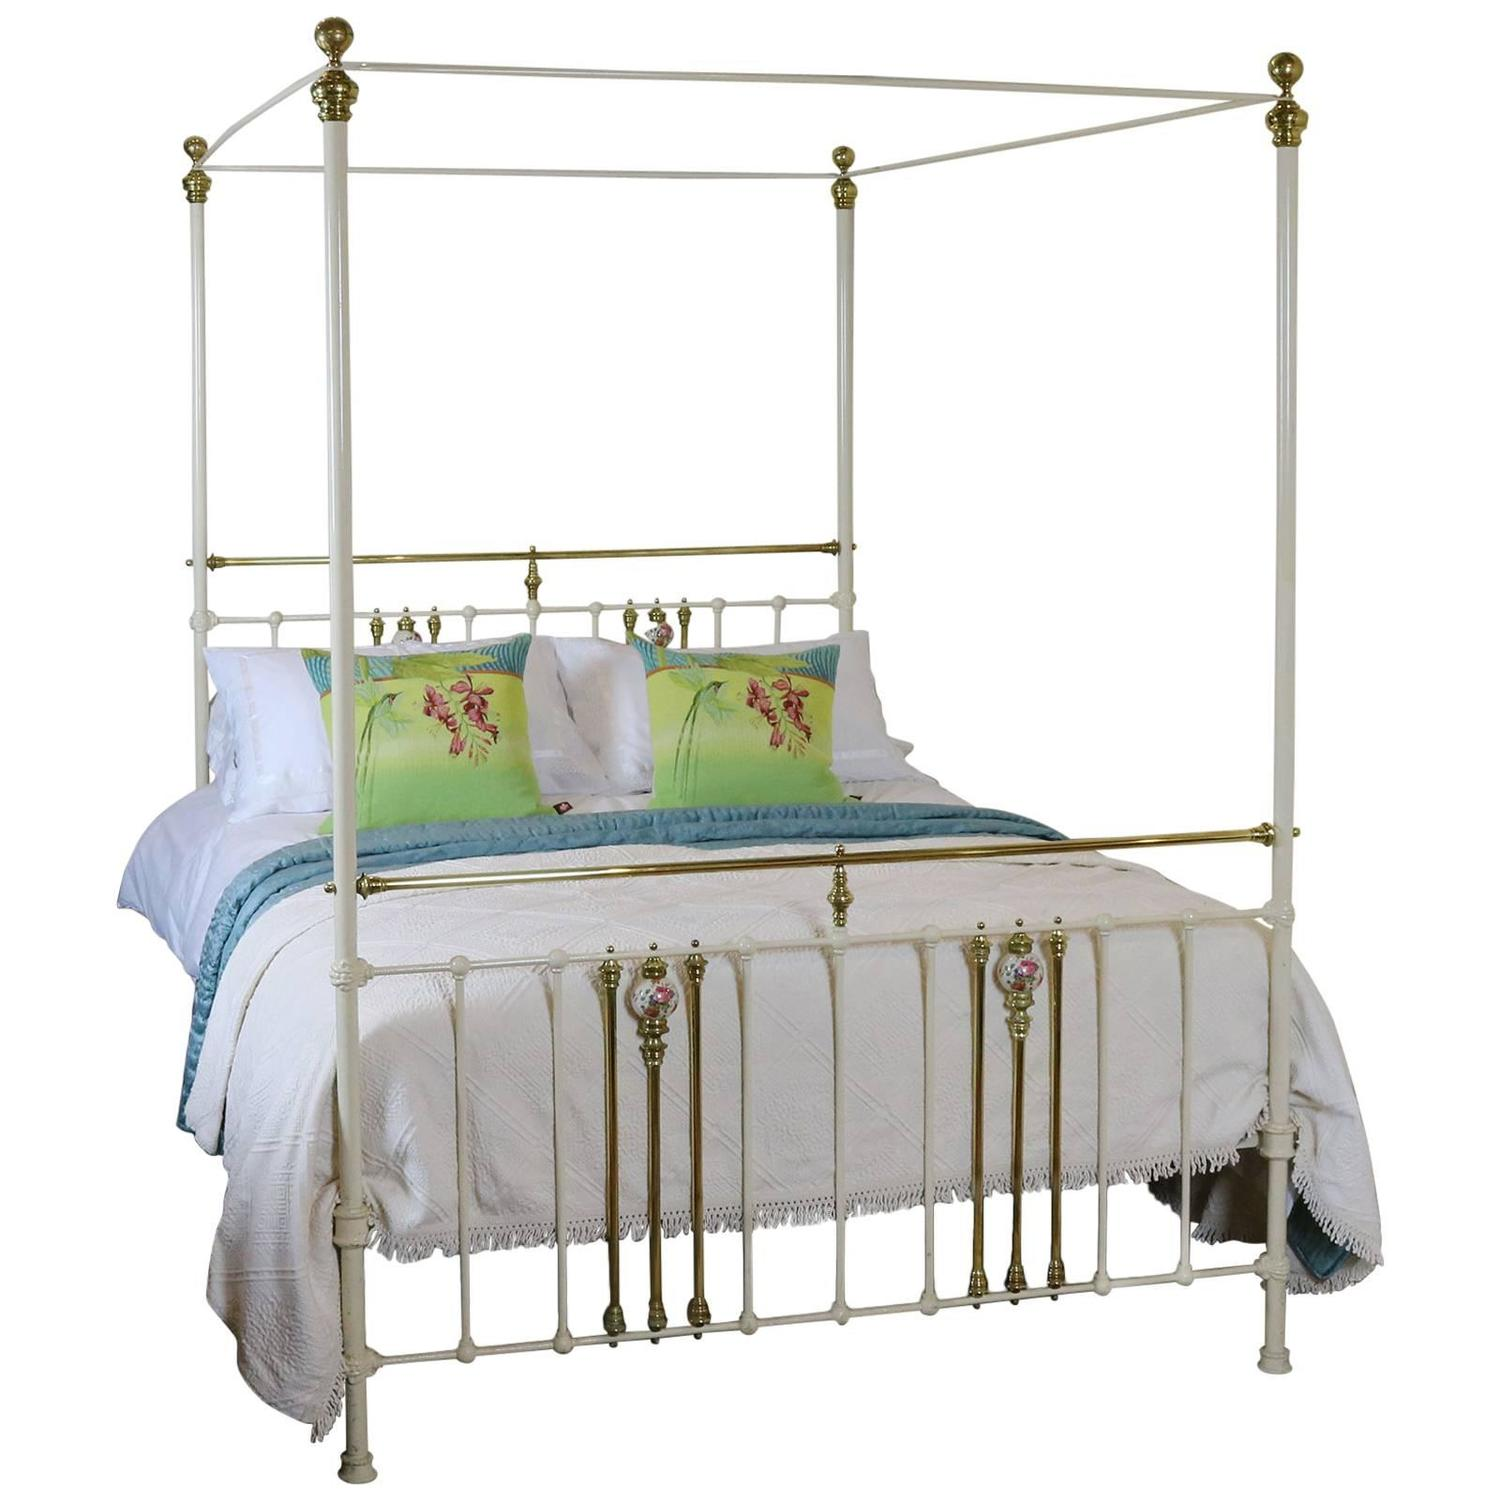 Cream Metal Four Poster Bed For Sale At 1stdibs